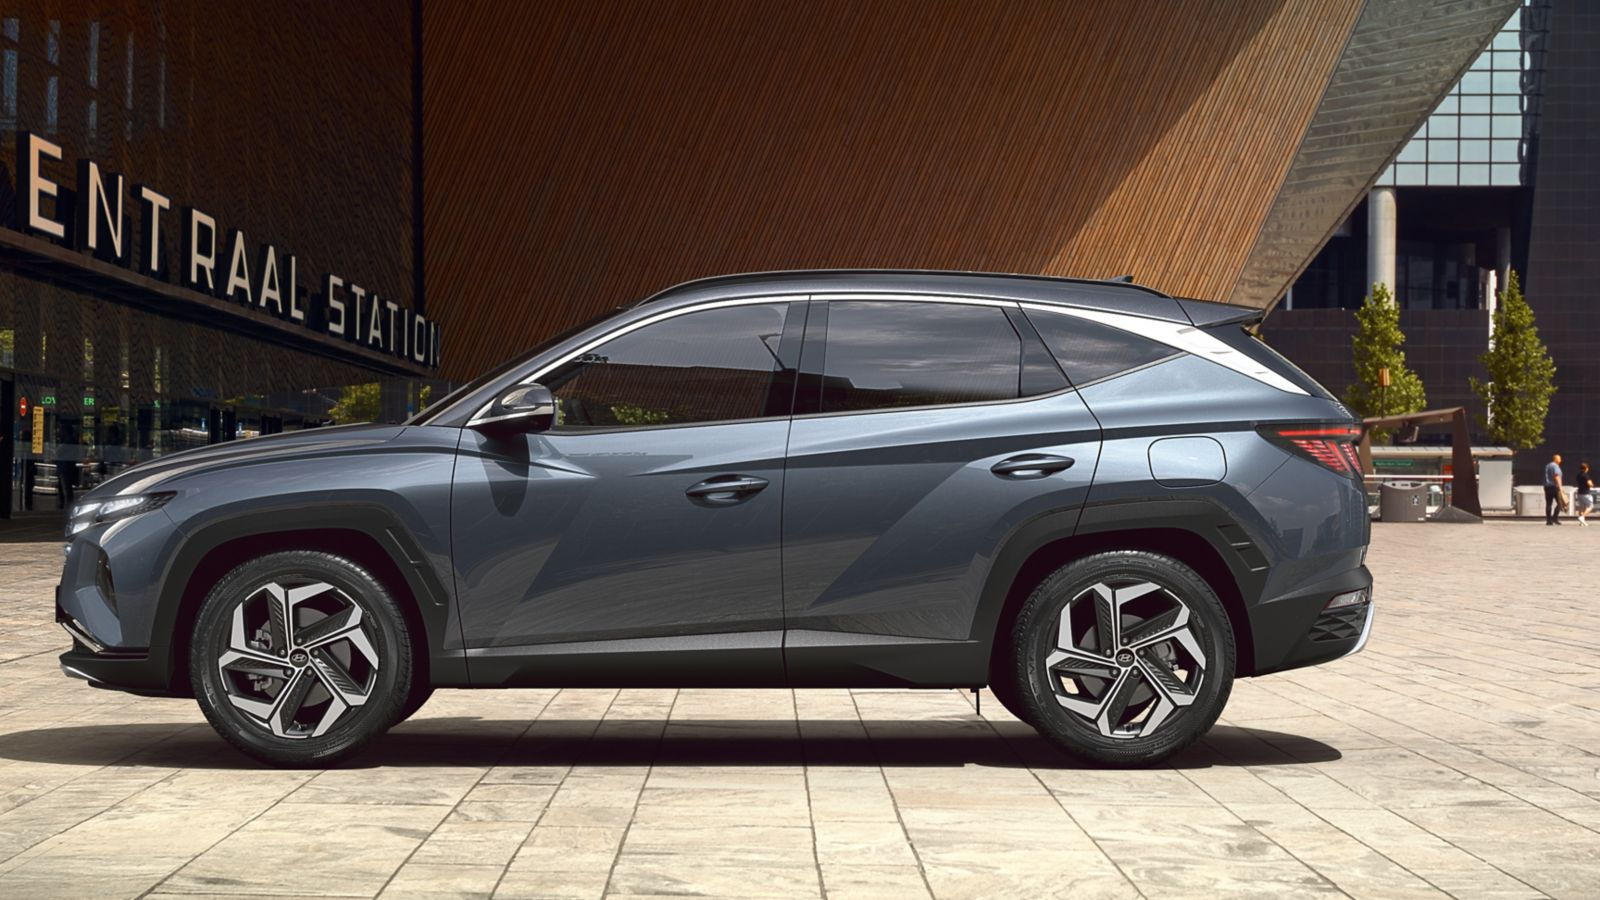 The all-new Hyundai Tucson compact SUV pictured from the side.